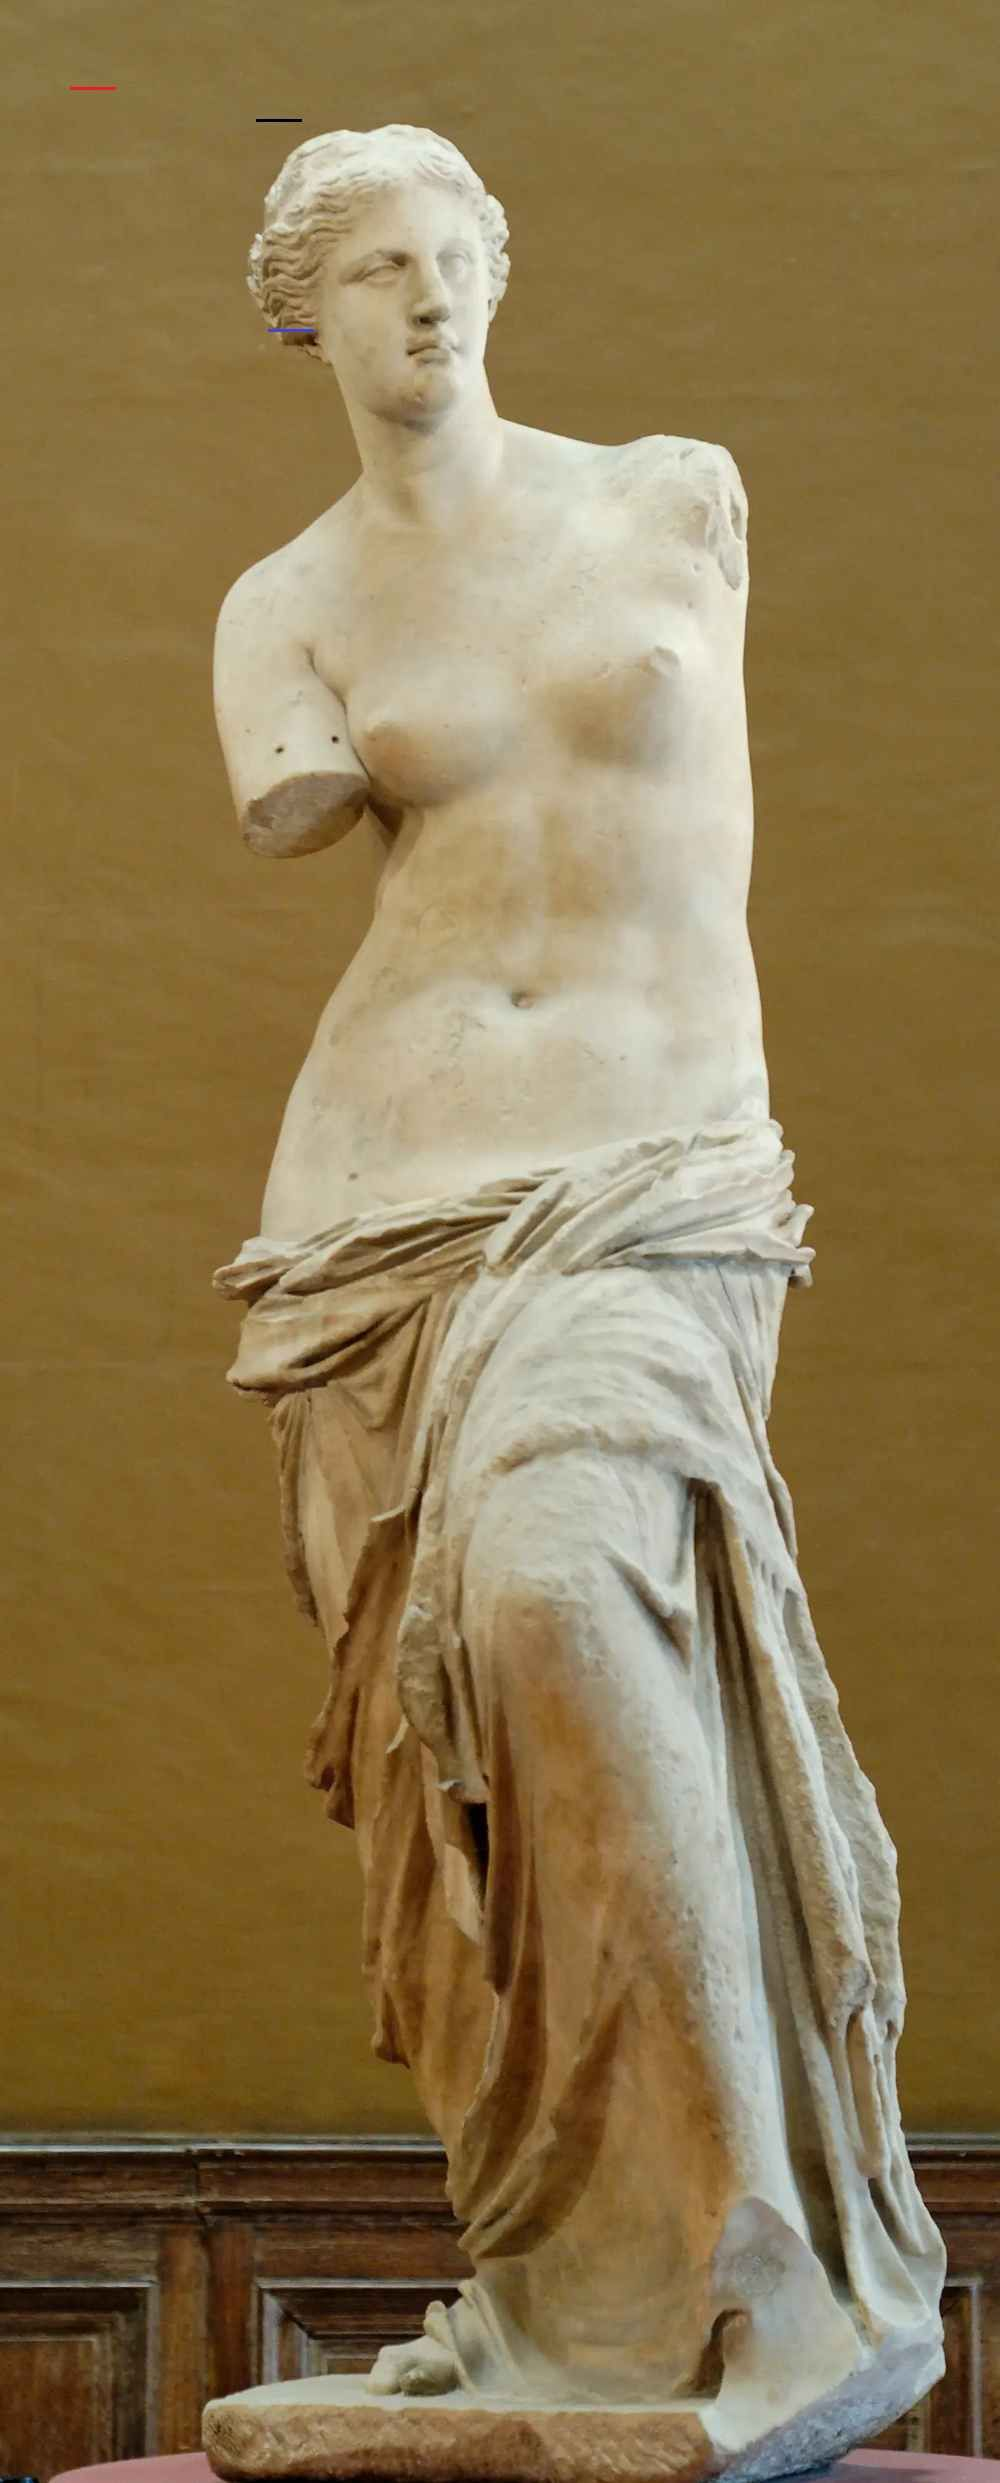 The 15 Greatest Masterpieces At The Louvre Greekstatue A List Of Must See Works Of Art At The Louvre Museum In Paris Statue Greek Statues Sculpture Images